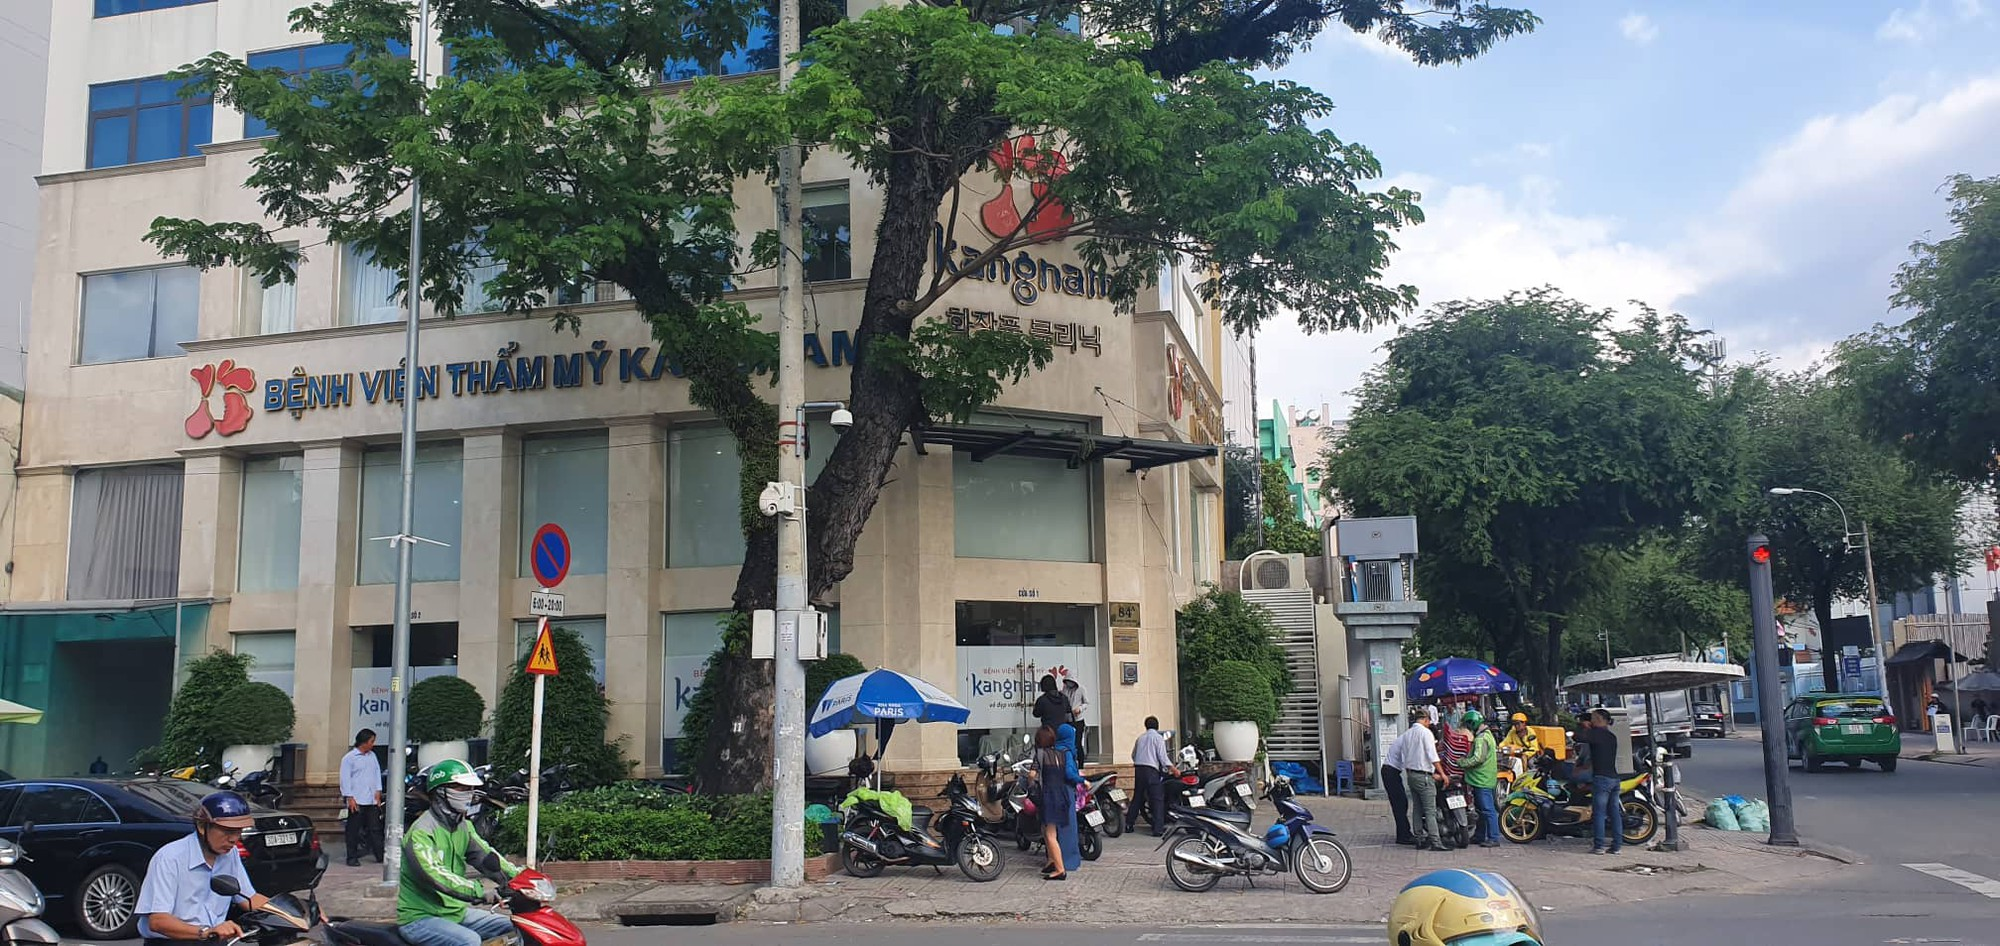 Medical error behind plastic surgery-related death in Ho Chi Minh City: health department